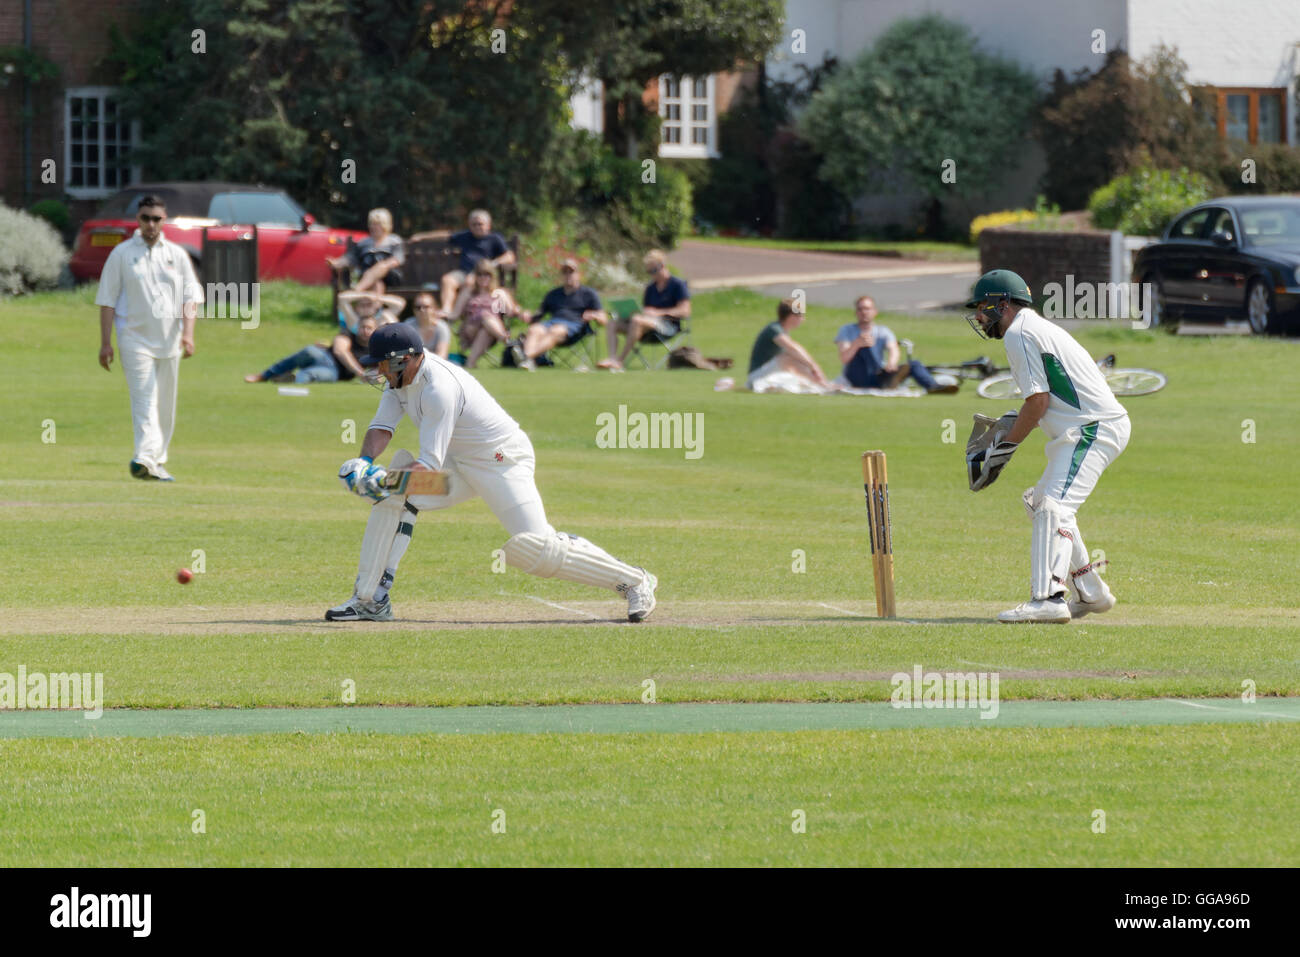 Village cricket being played in Hartley Wintney, Hampshire, UK. Stock Photo